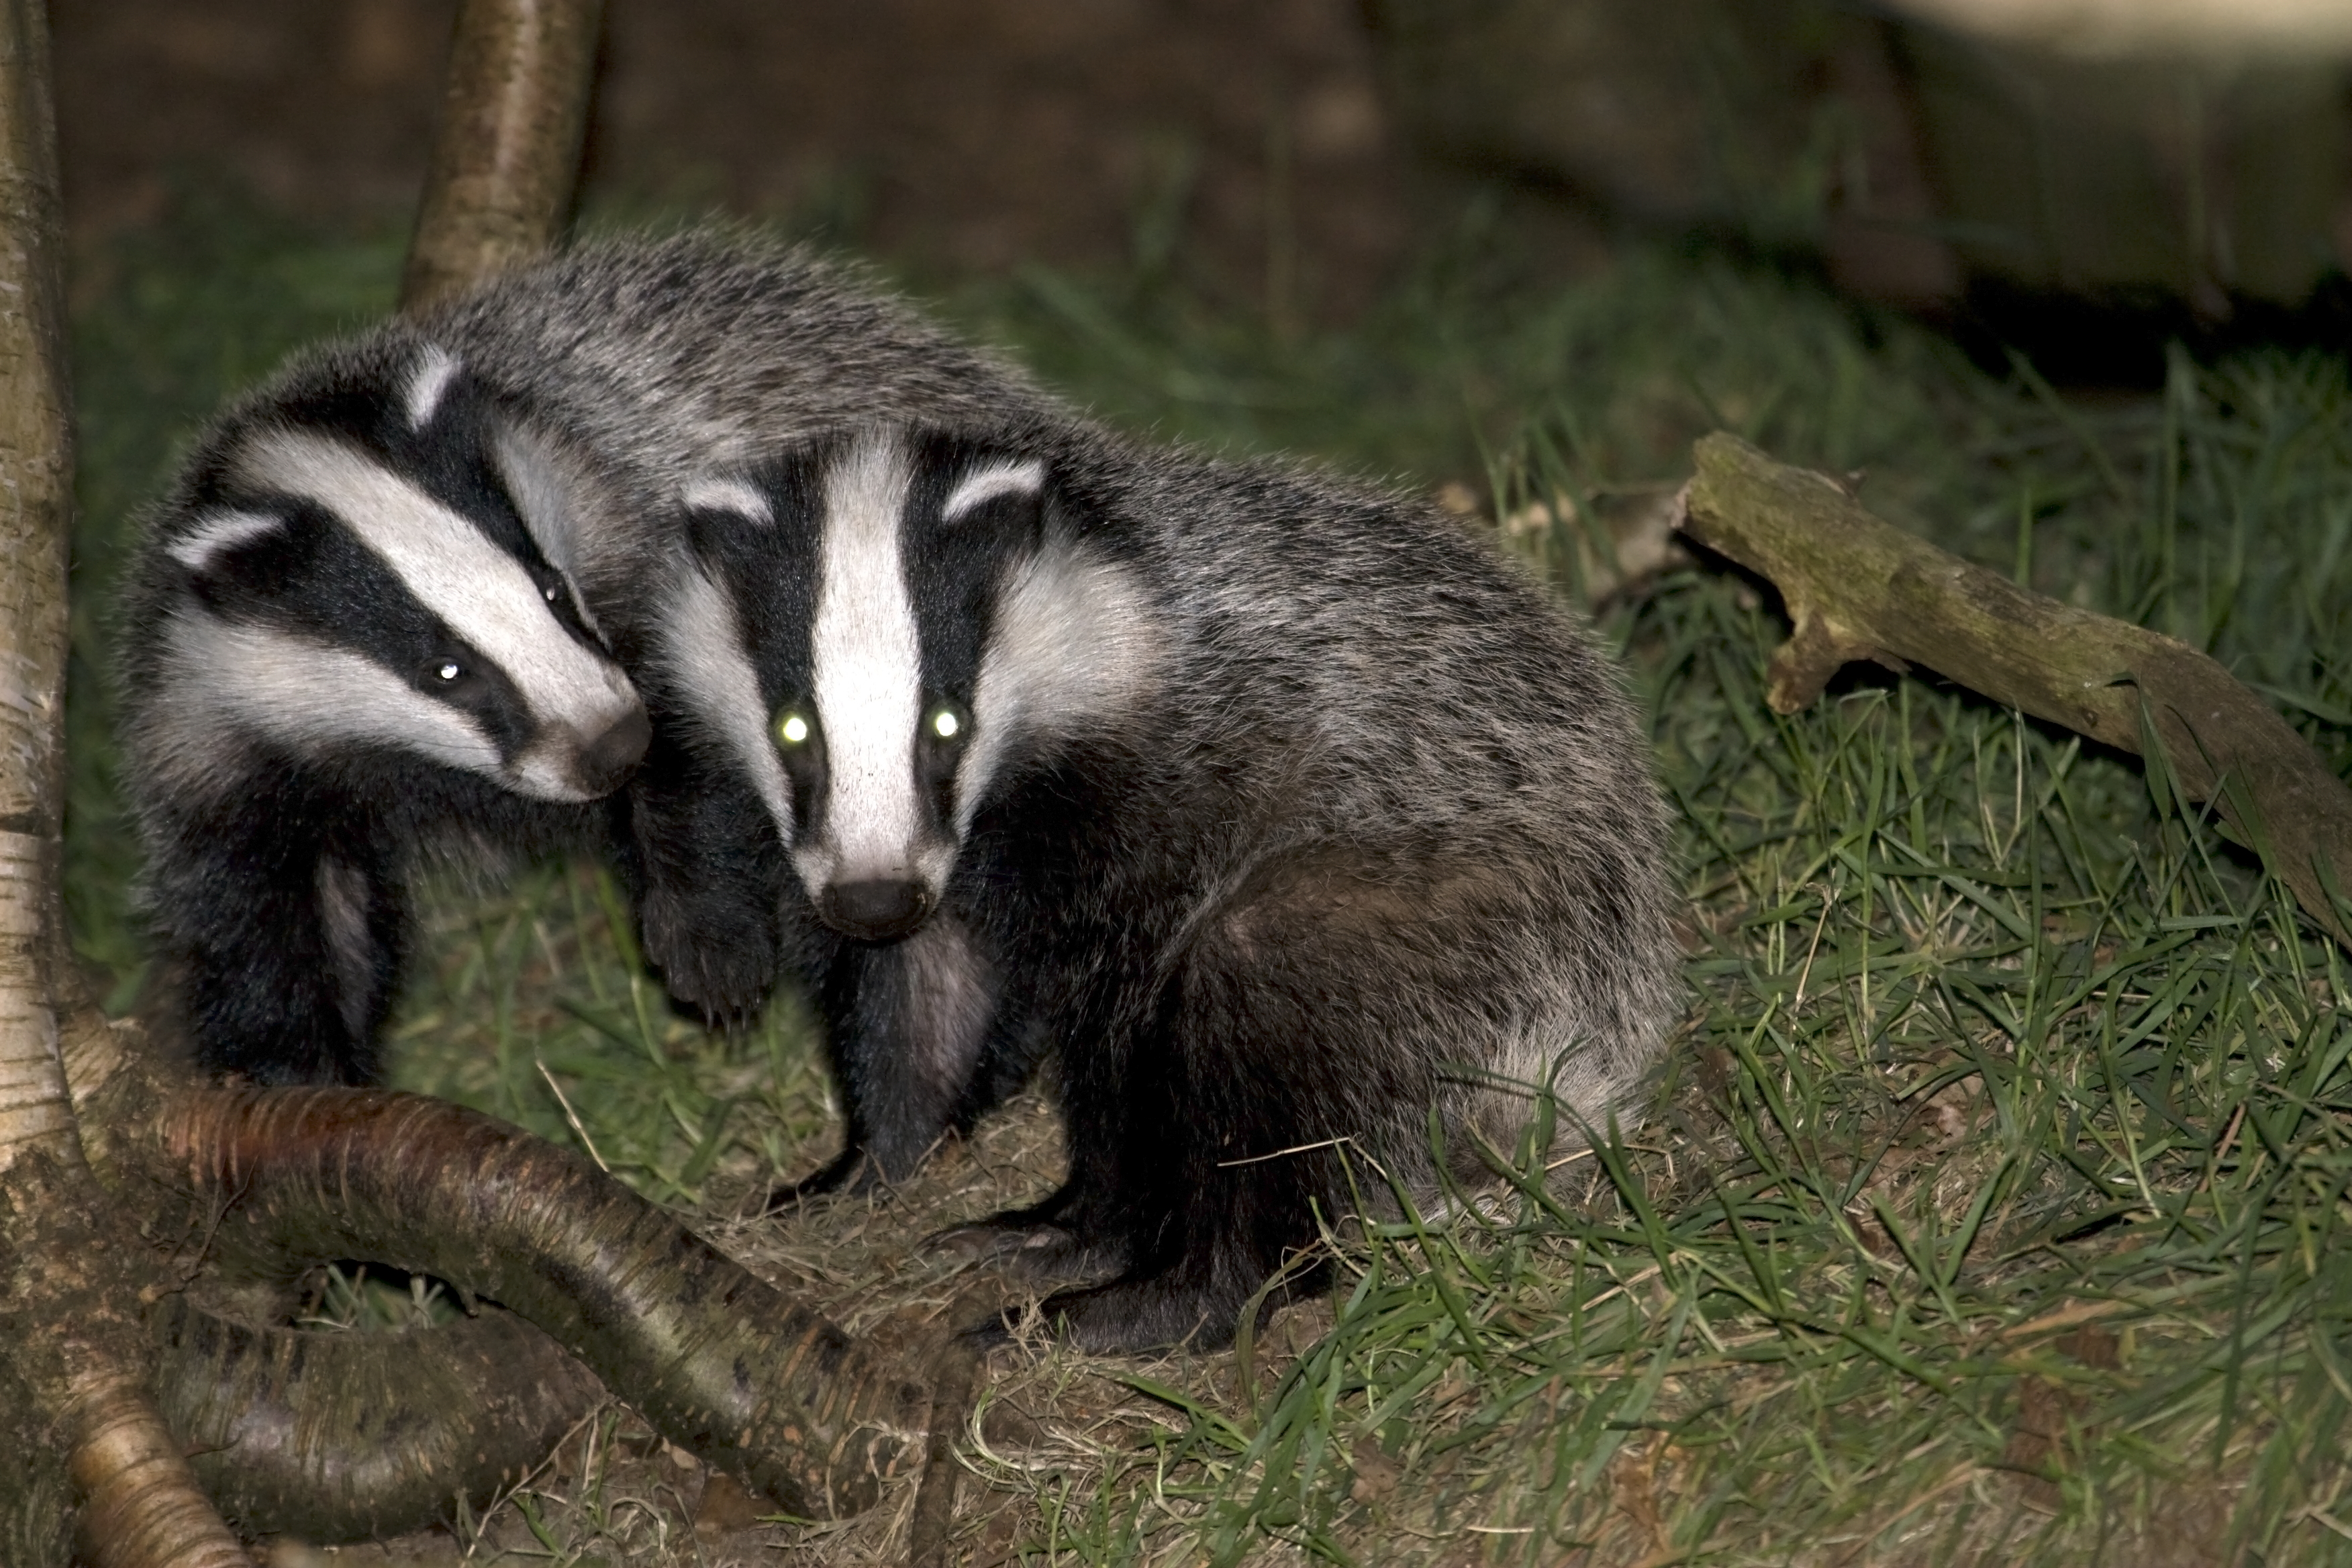 New light on the secret life of badgers